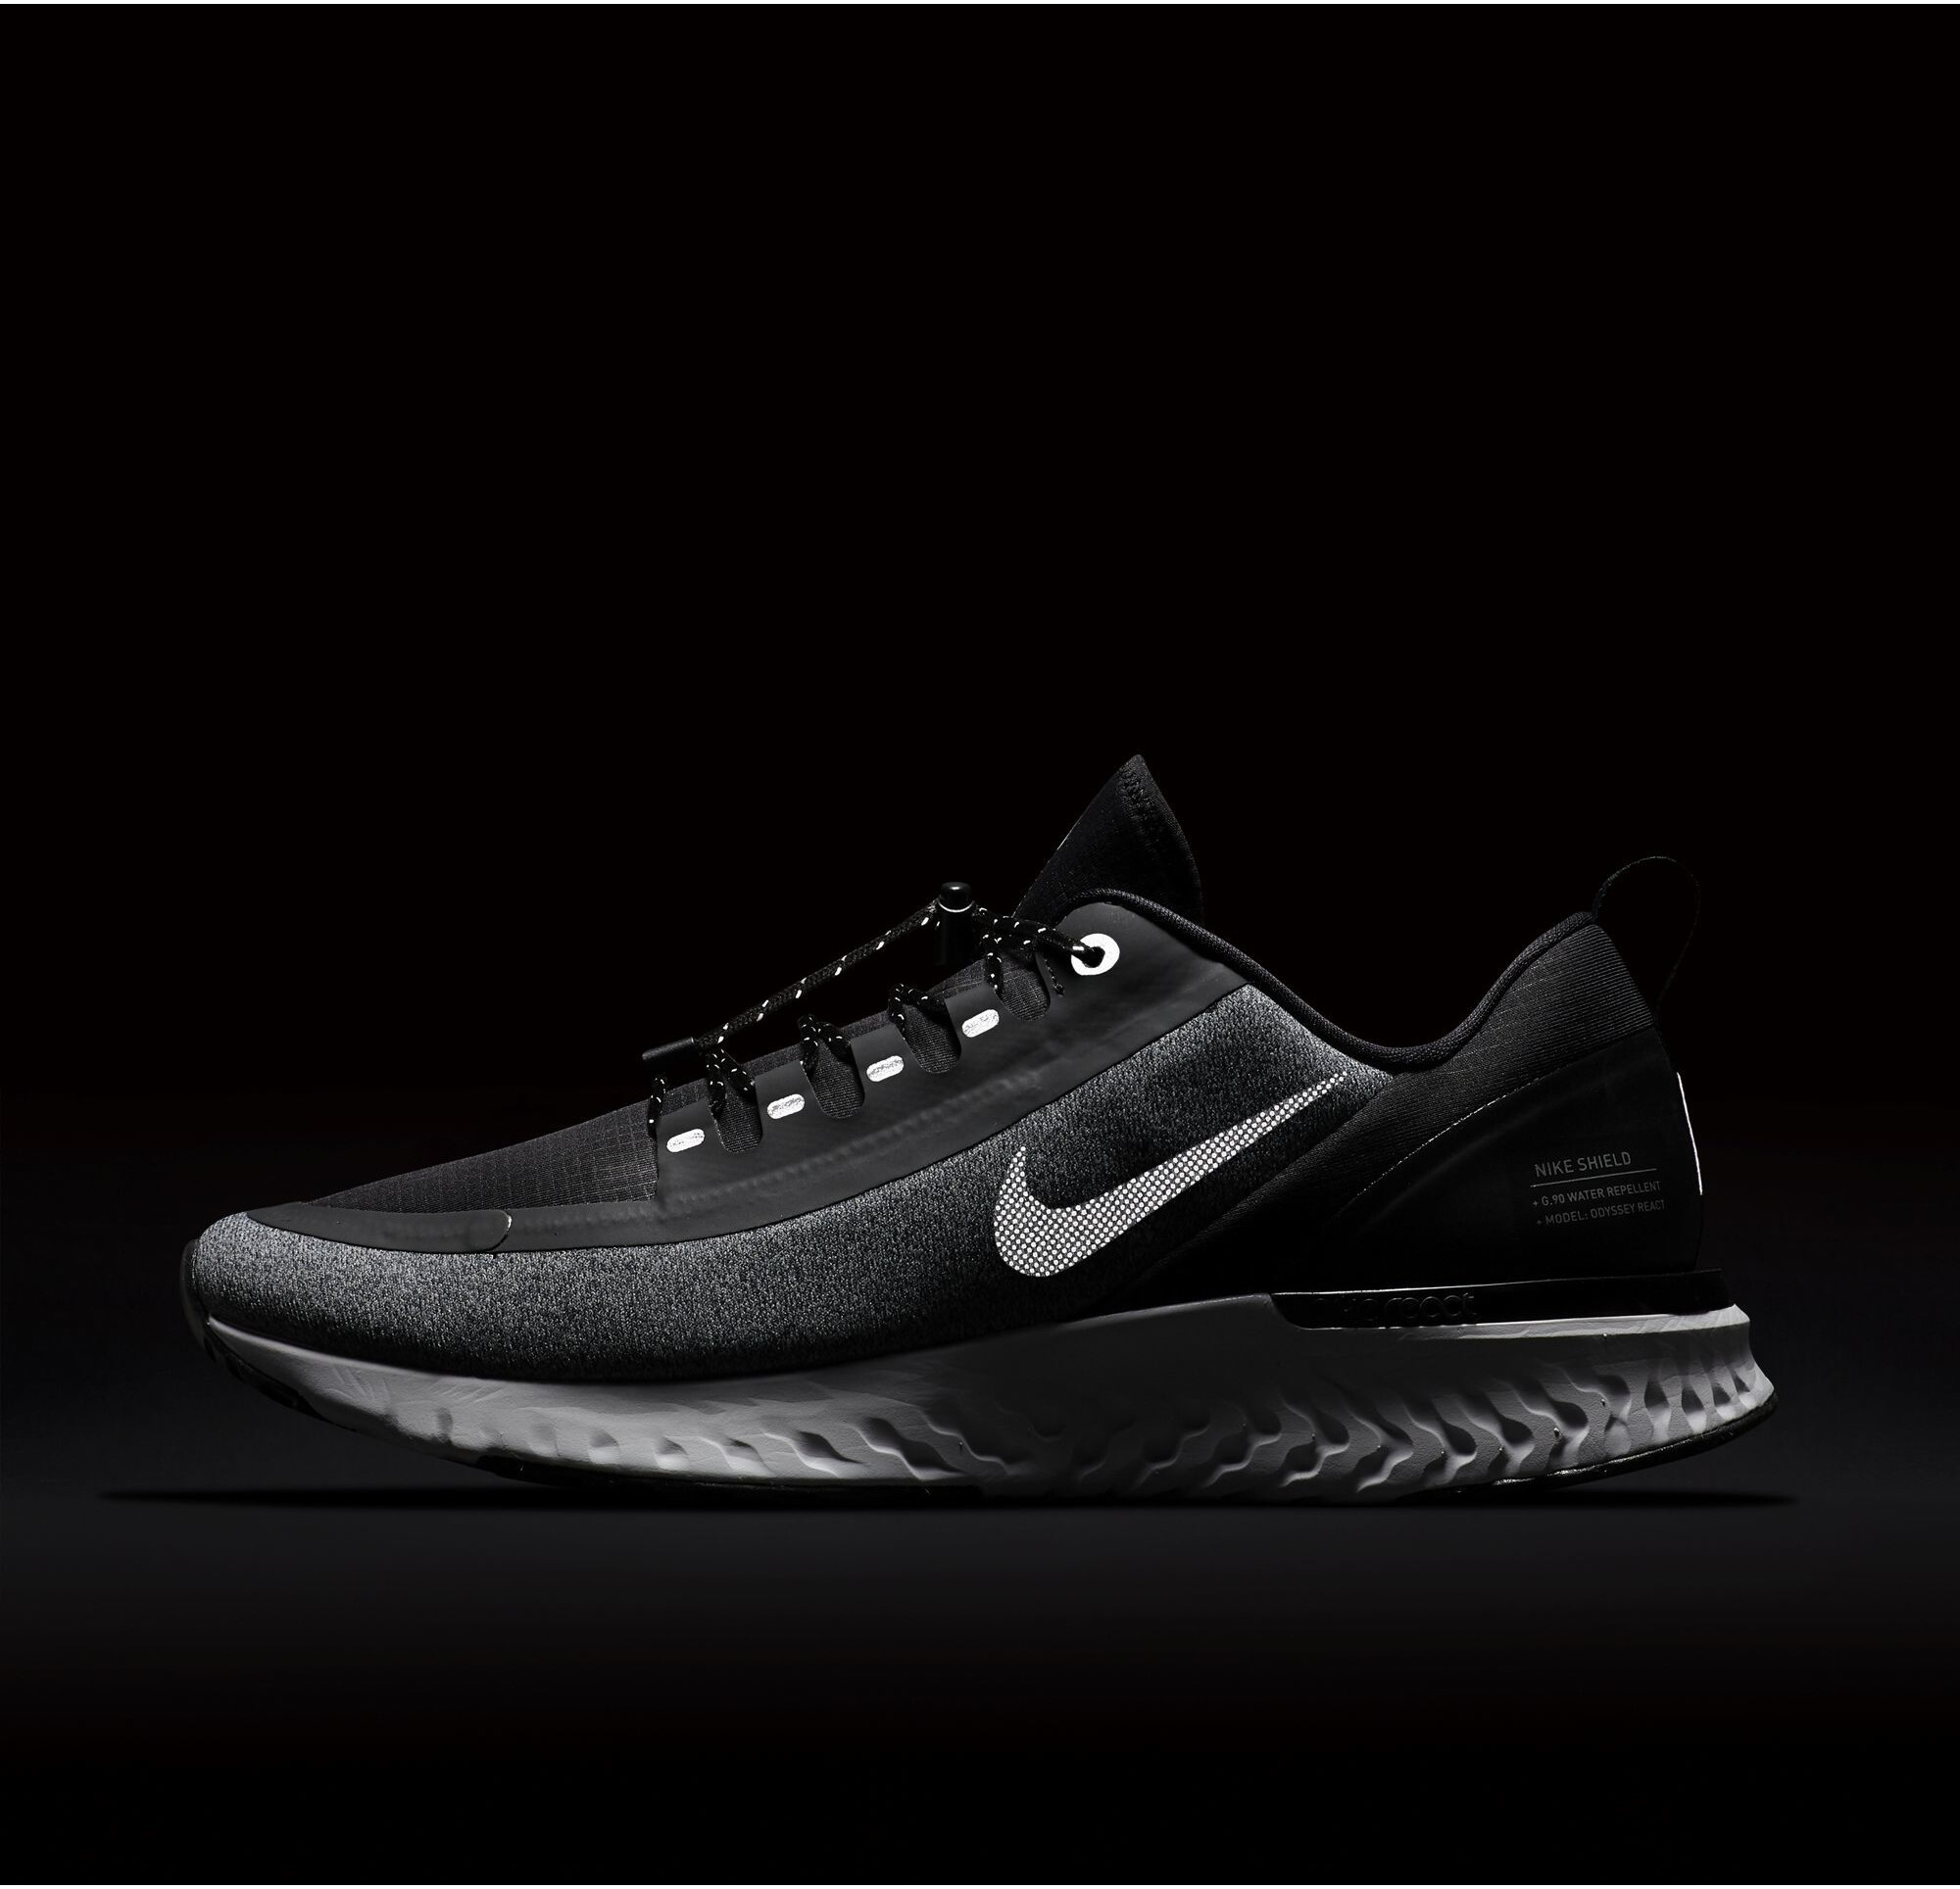 separation shoes 03dea 125fb Nike Odyssey React Shield - Zapatillas running Hombre - negro